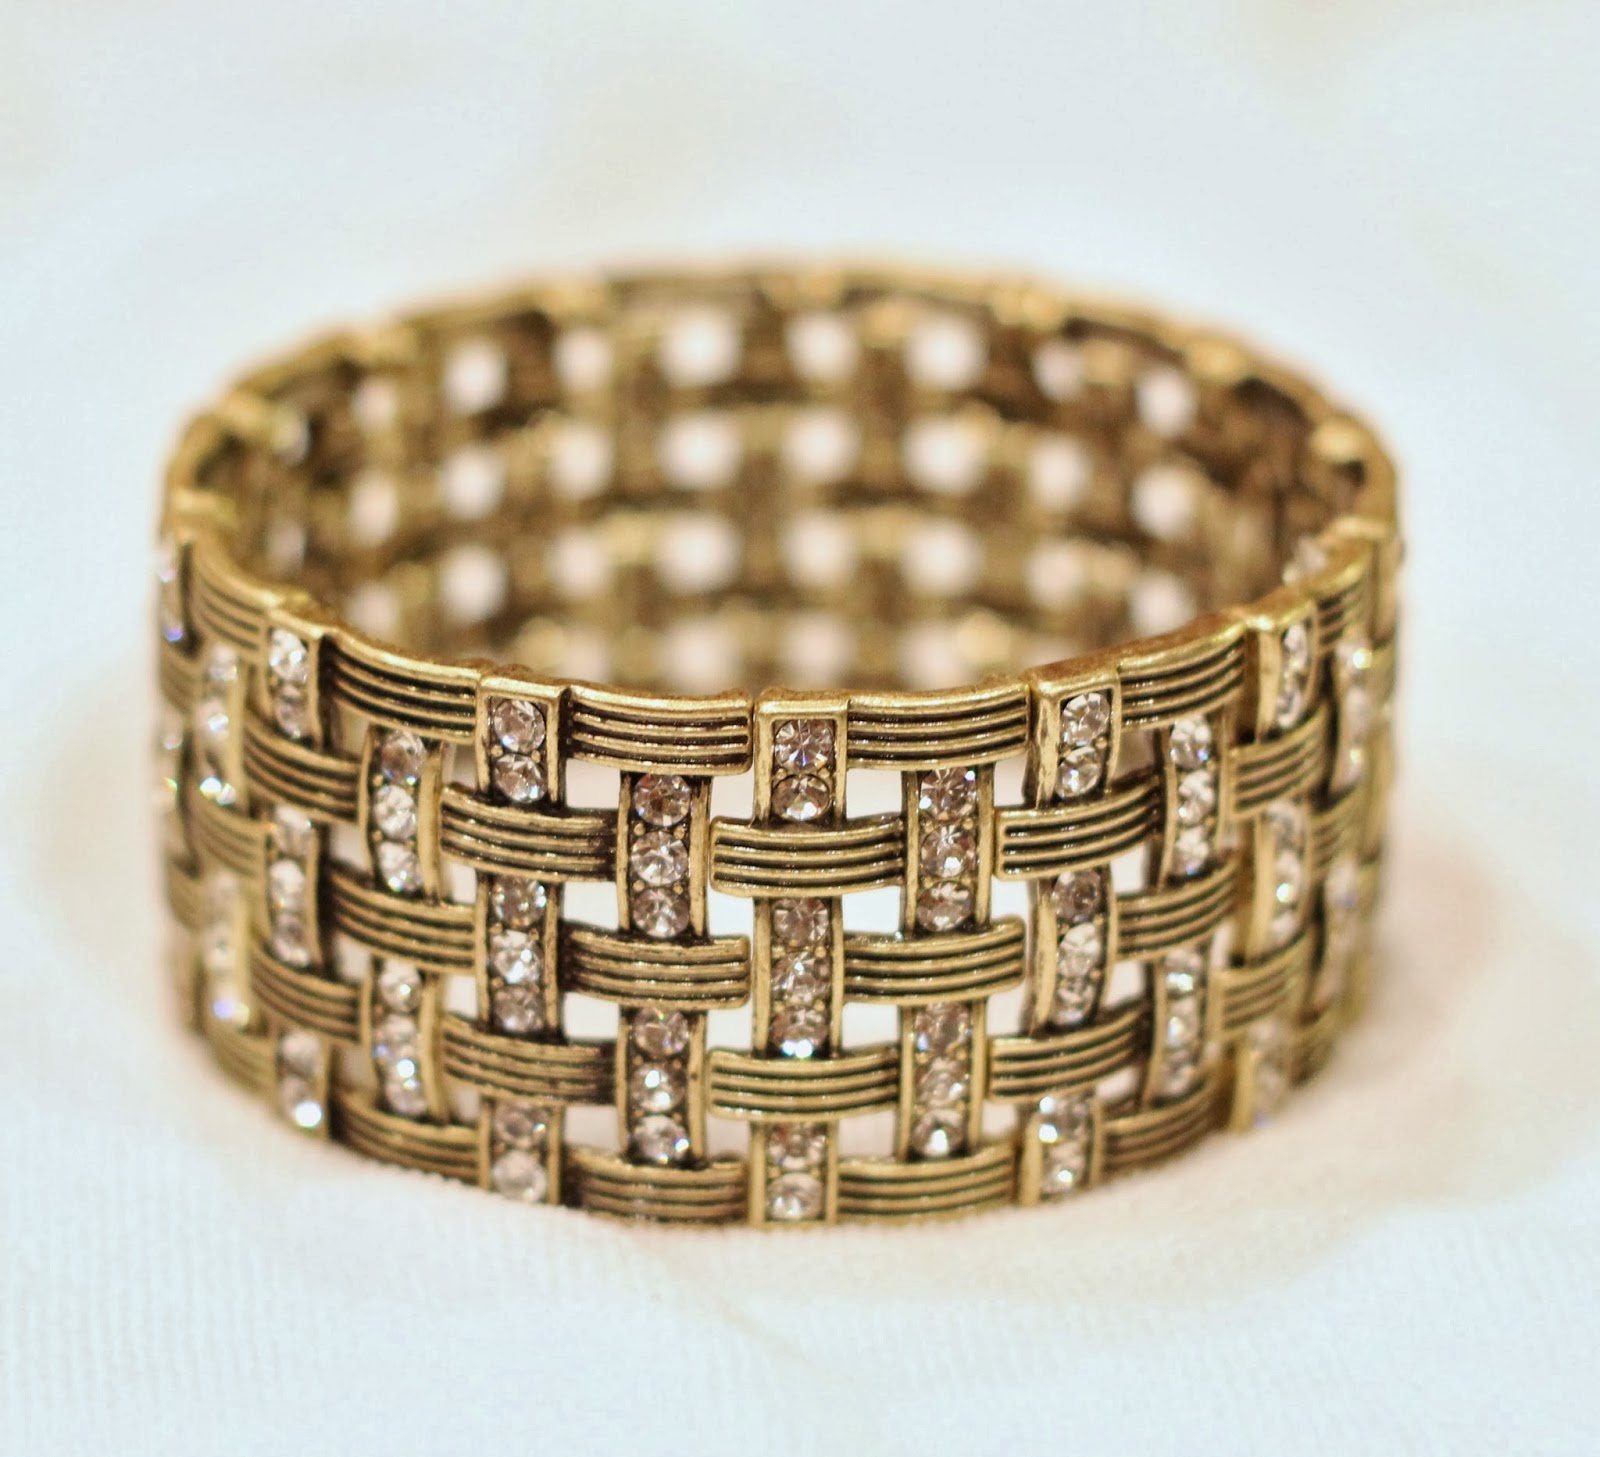 How To Basket Weave Bracelet : Carpe diem design premier designs jewelry party